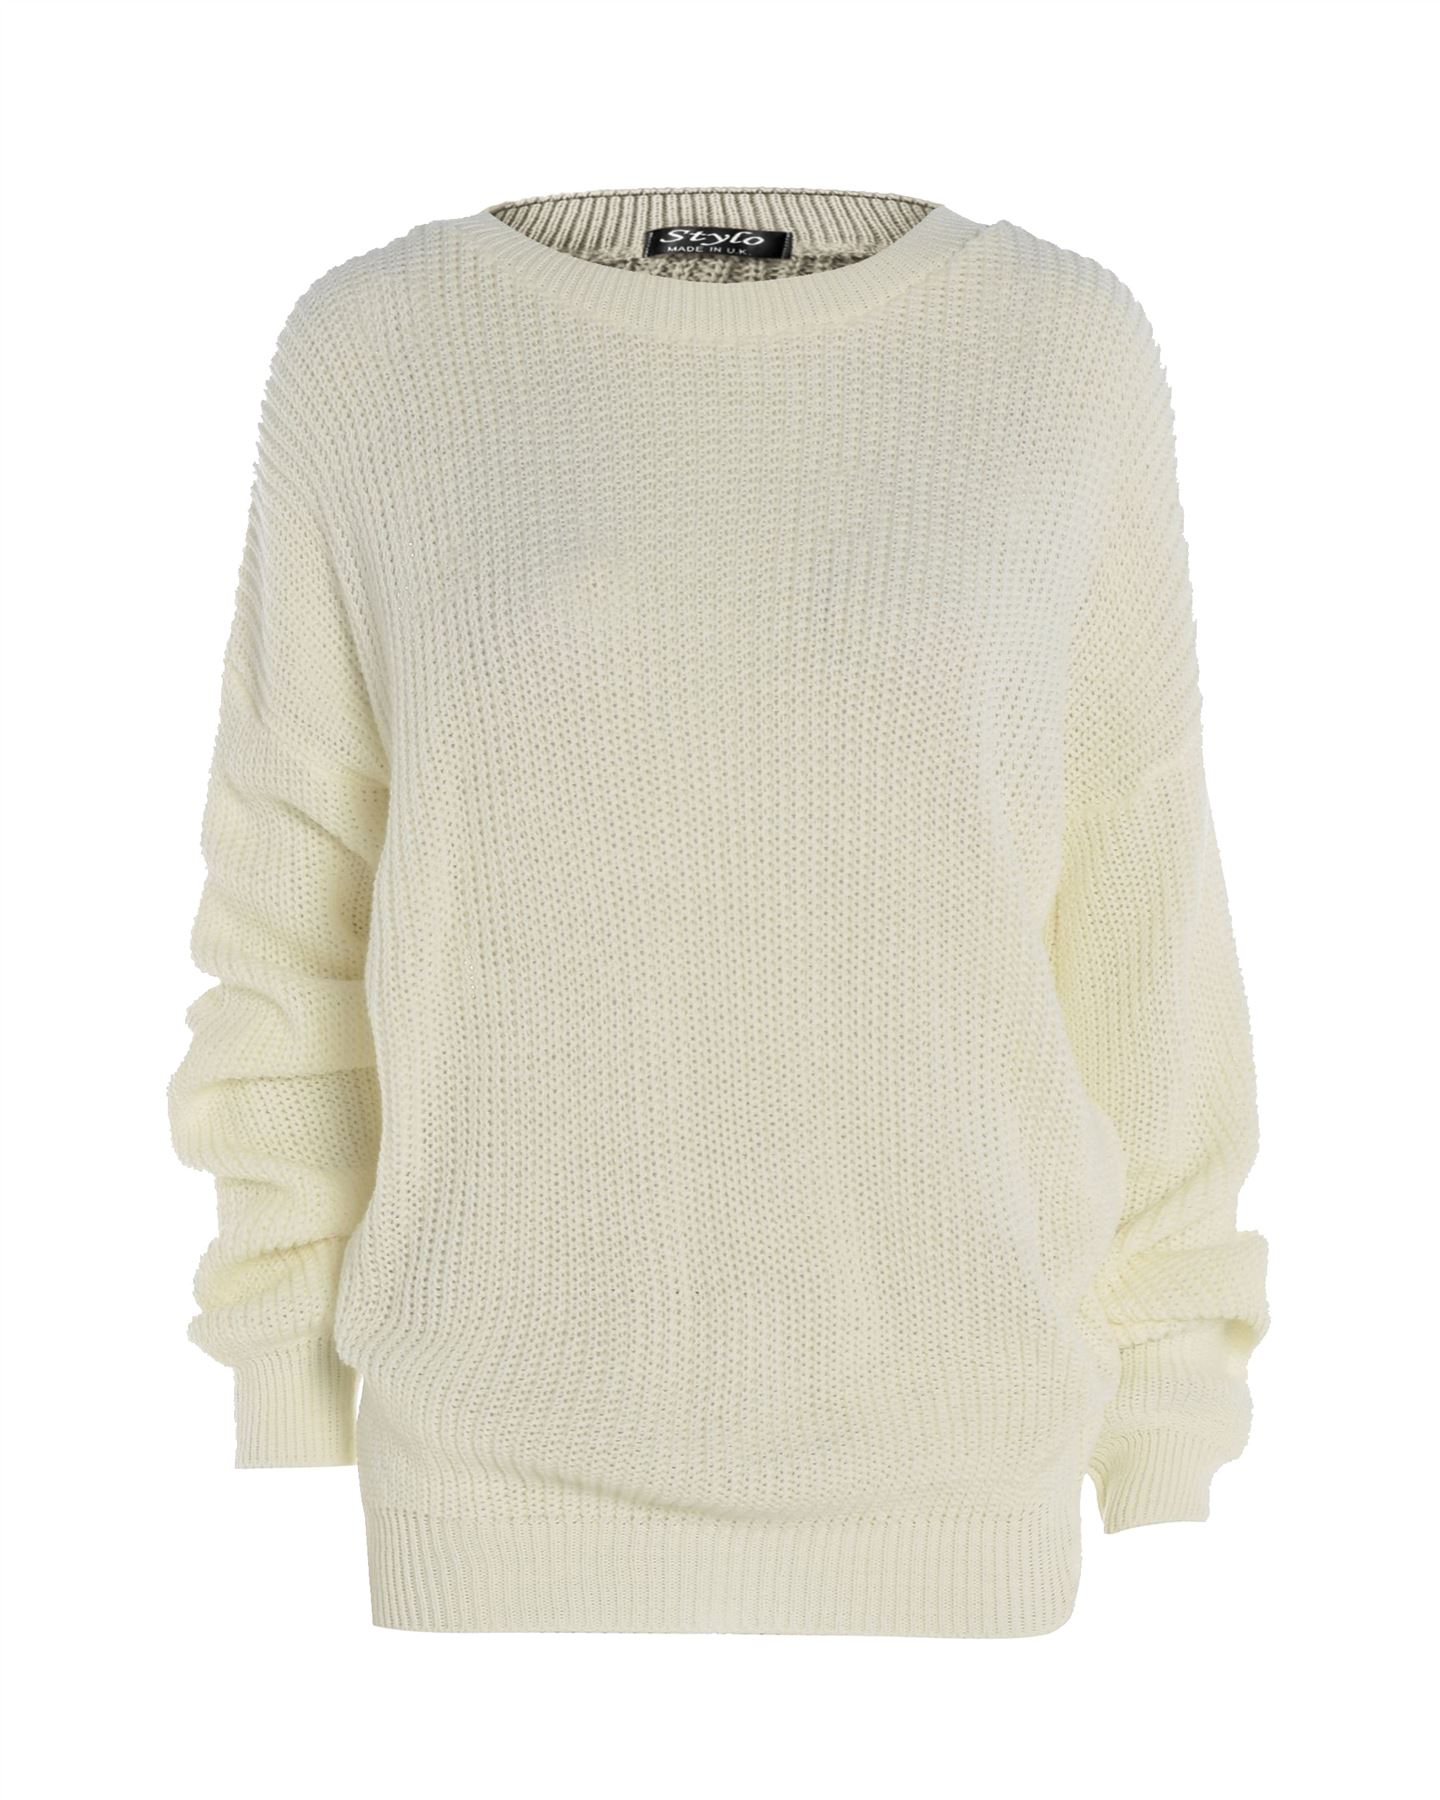 Ladies Women Knitted Long Sleeve Over sized Chunky Knit Baggy Jumper Sweater ...